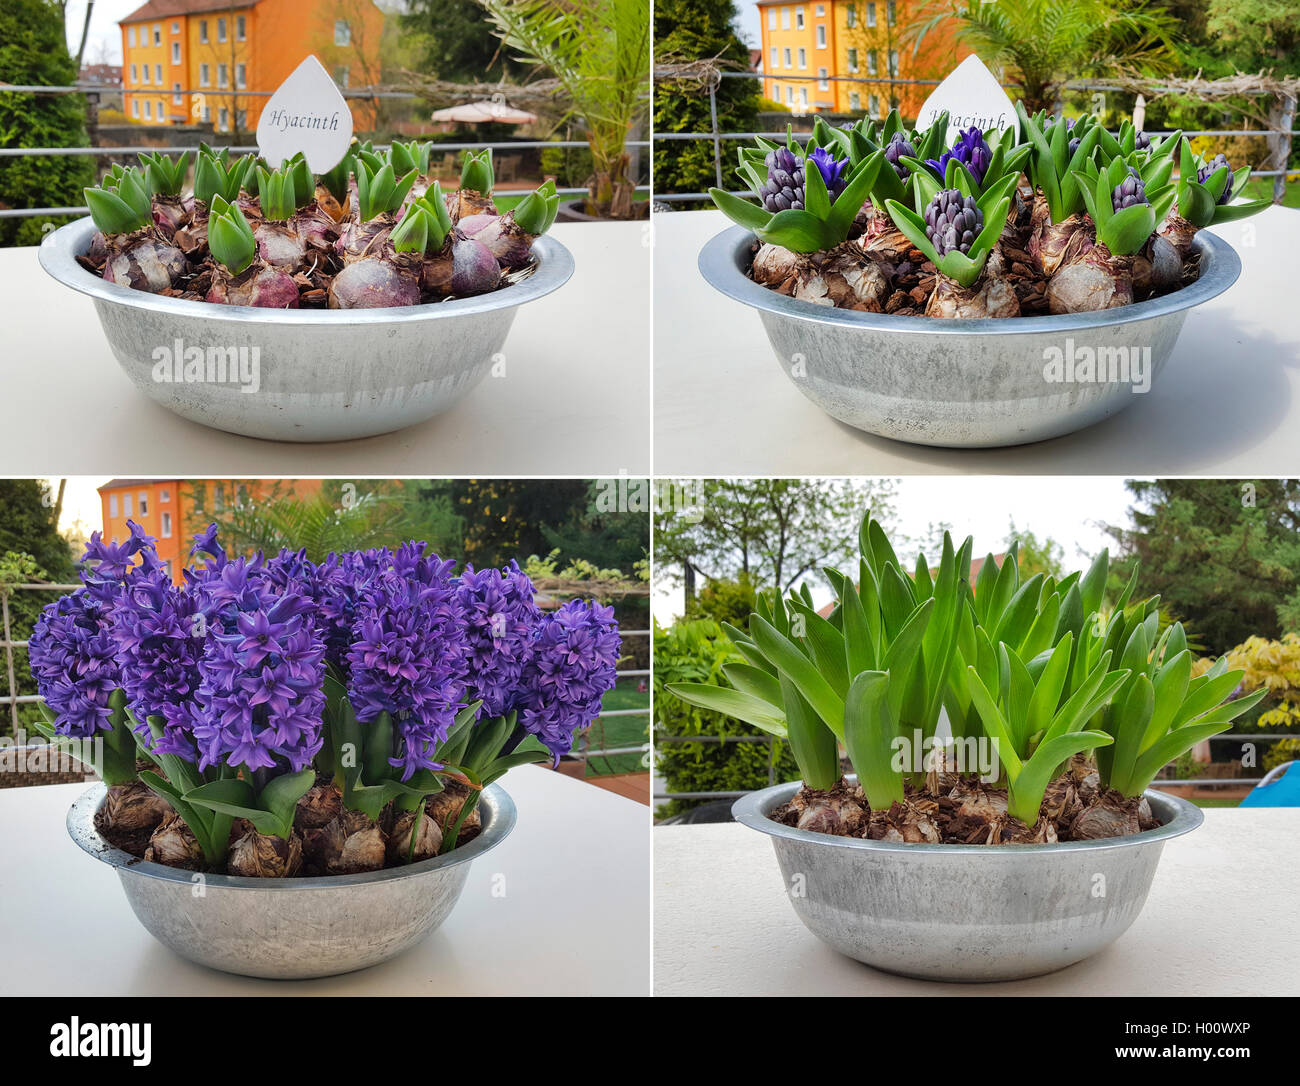 Jacinthe (Hyacinthus orientalis), four different stages of flowering in a flower bowl, Germany Stock Photo